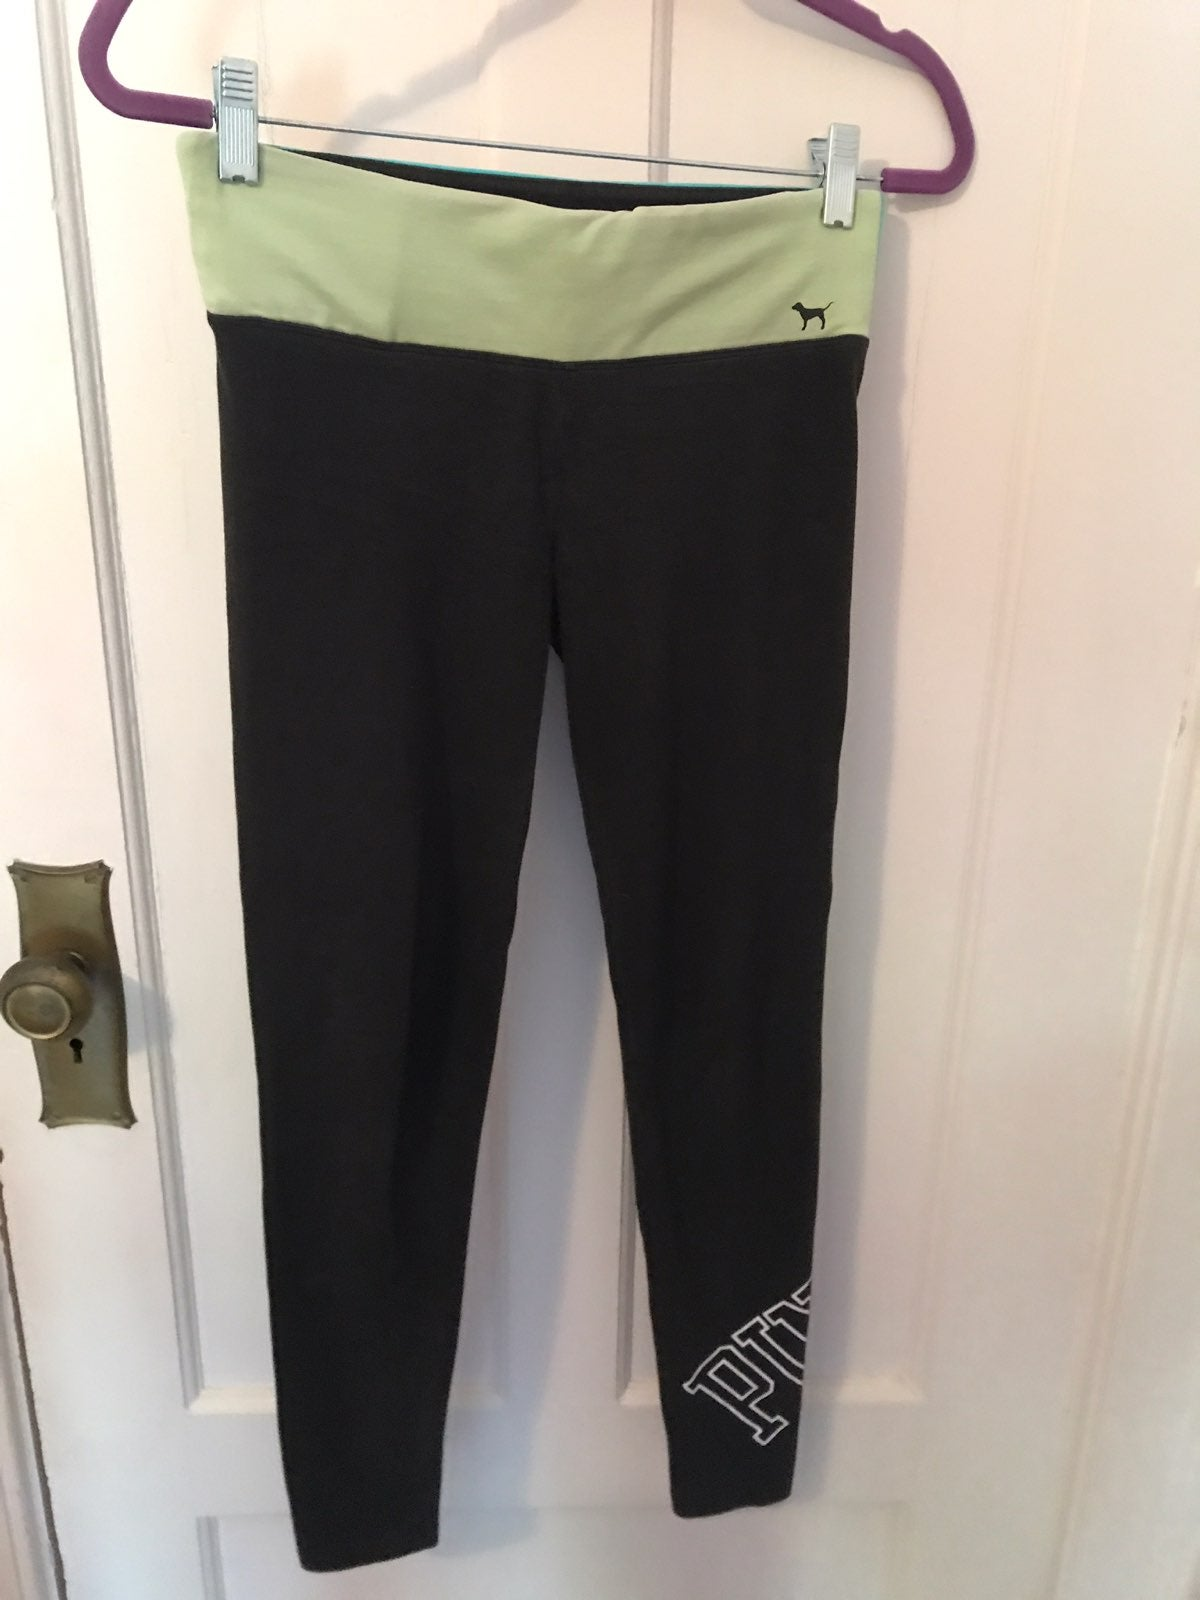 Yoga leggings by Pink, xs